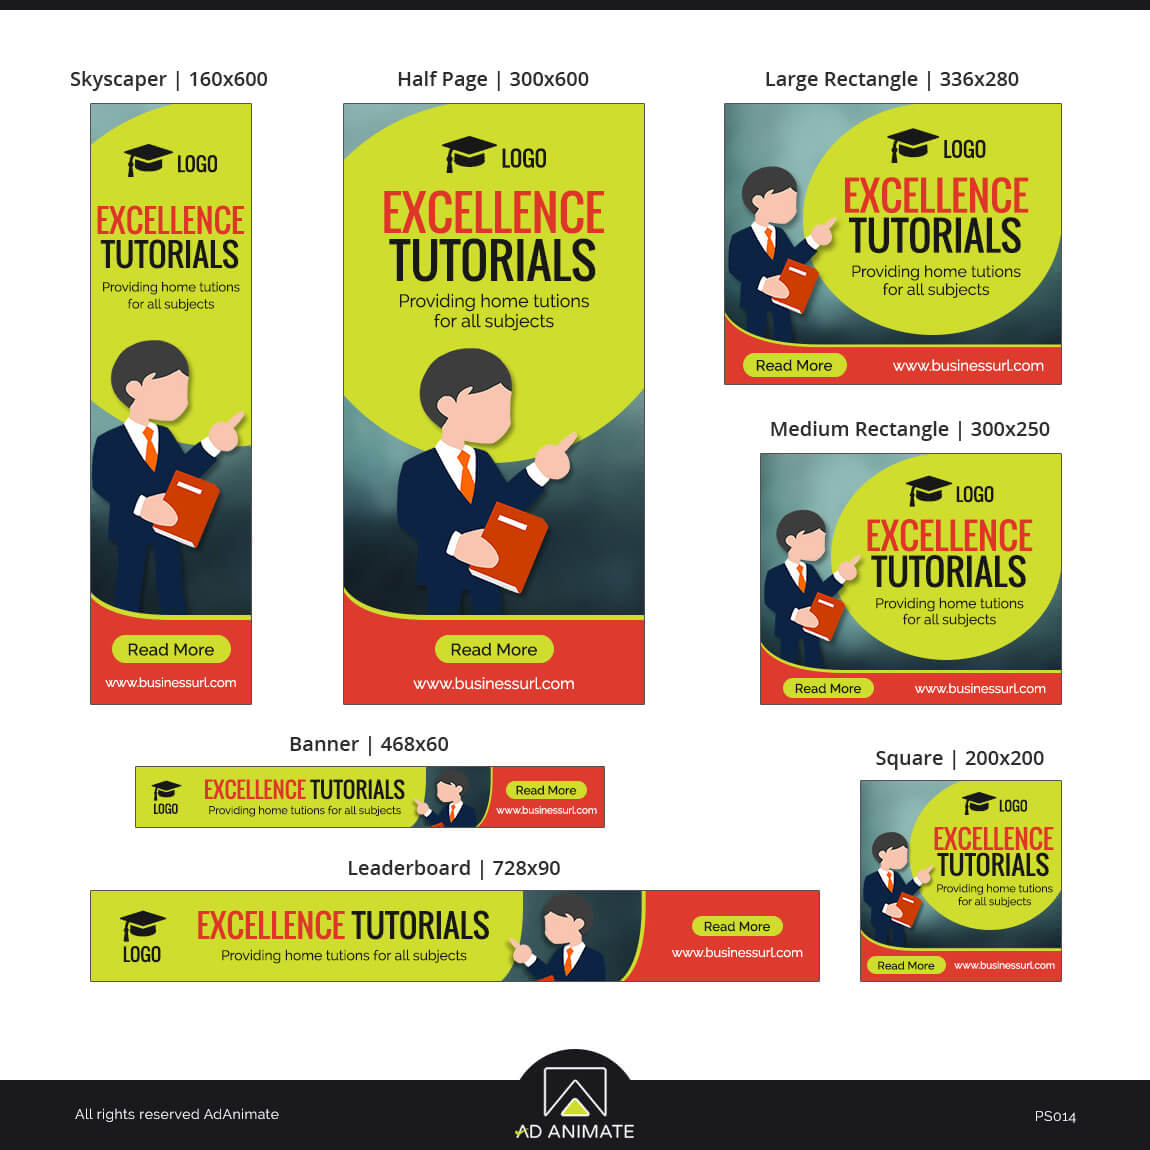 Tutor Banner Template ad design